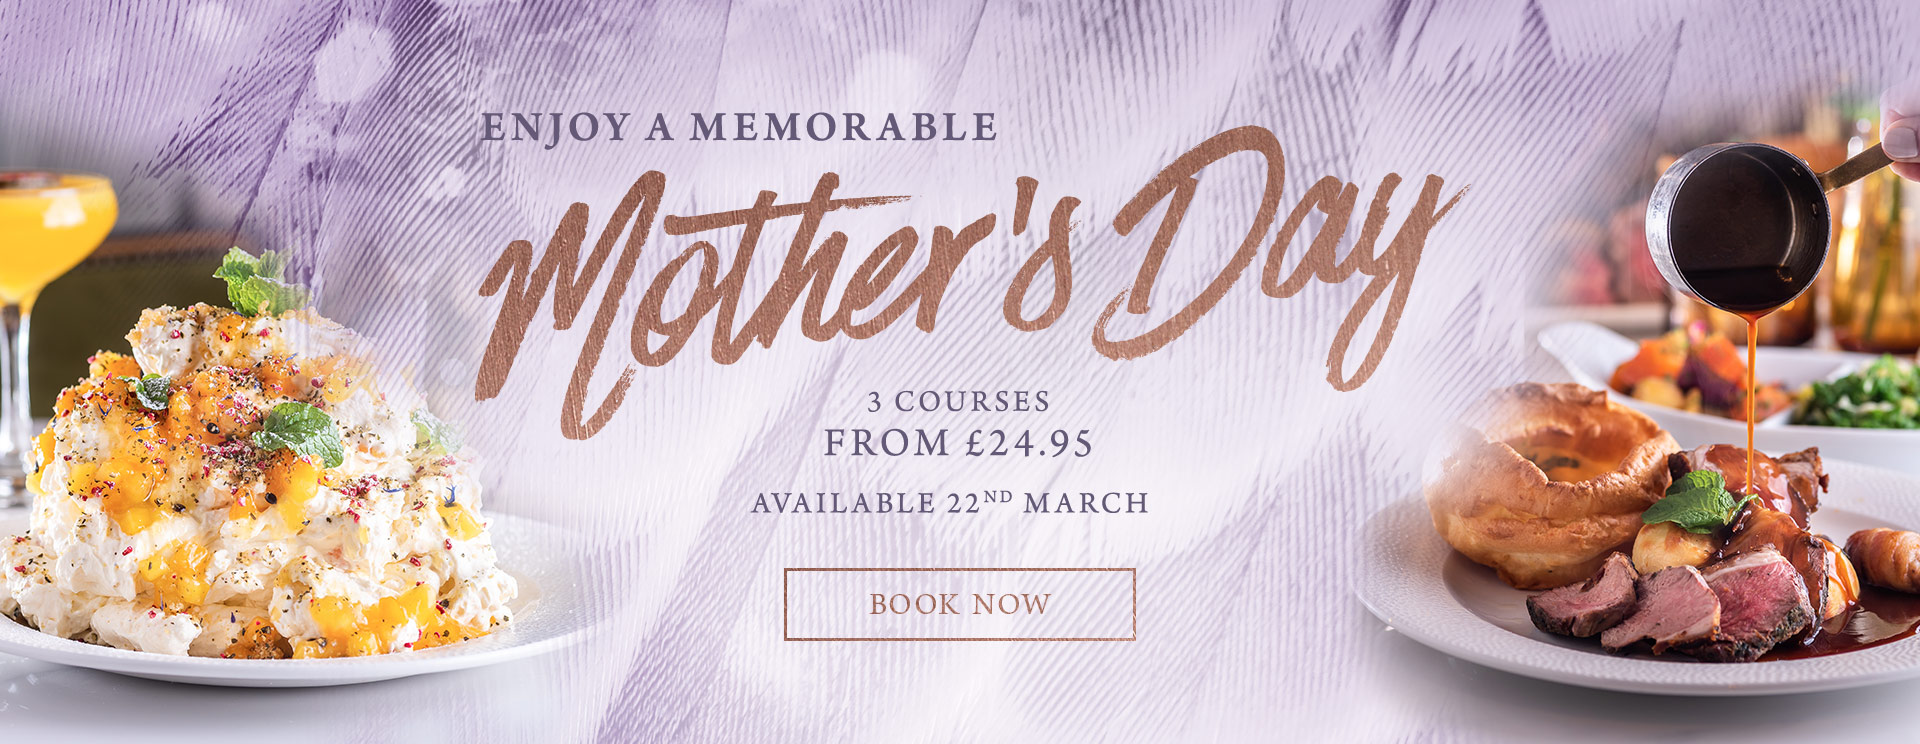 Mother's Day 2019 at The Bathampton Mill